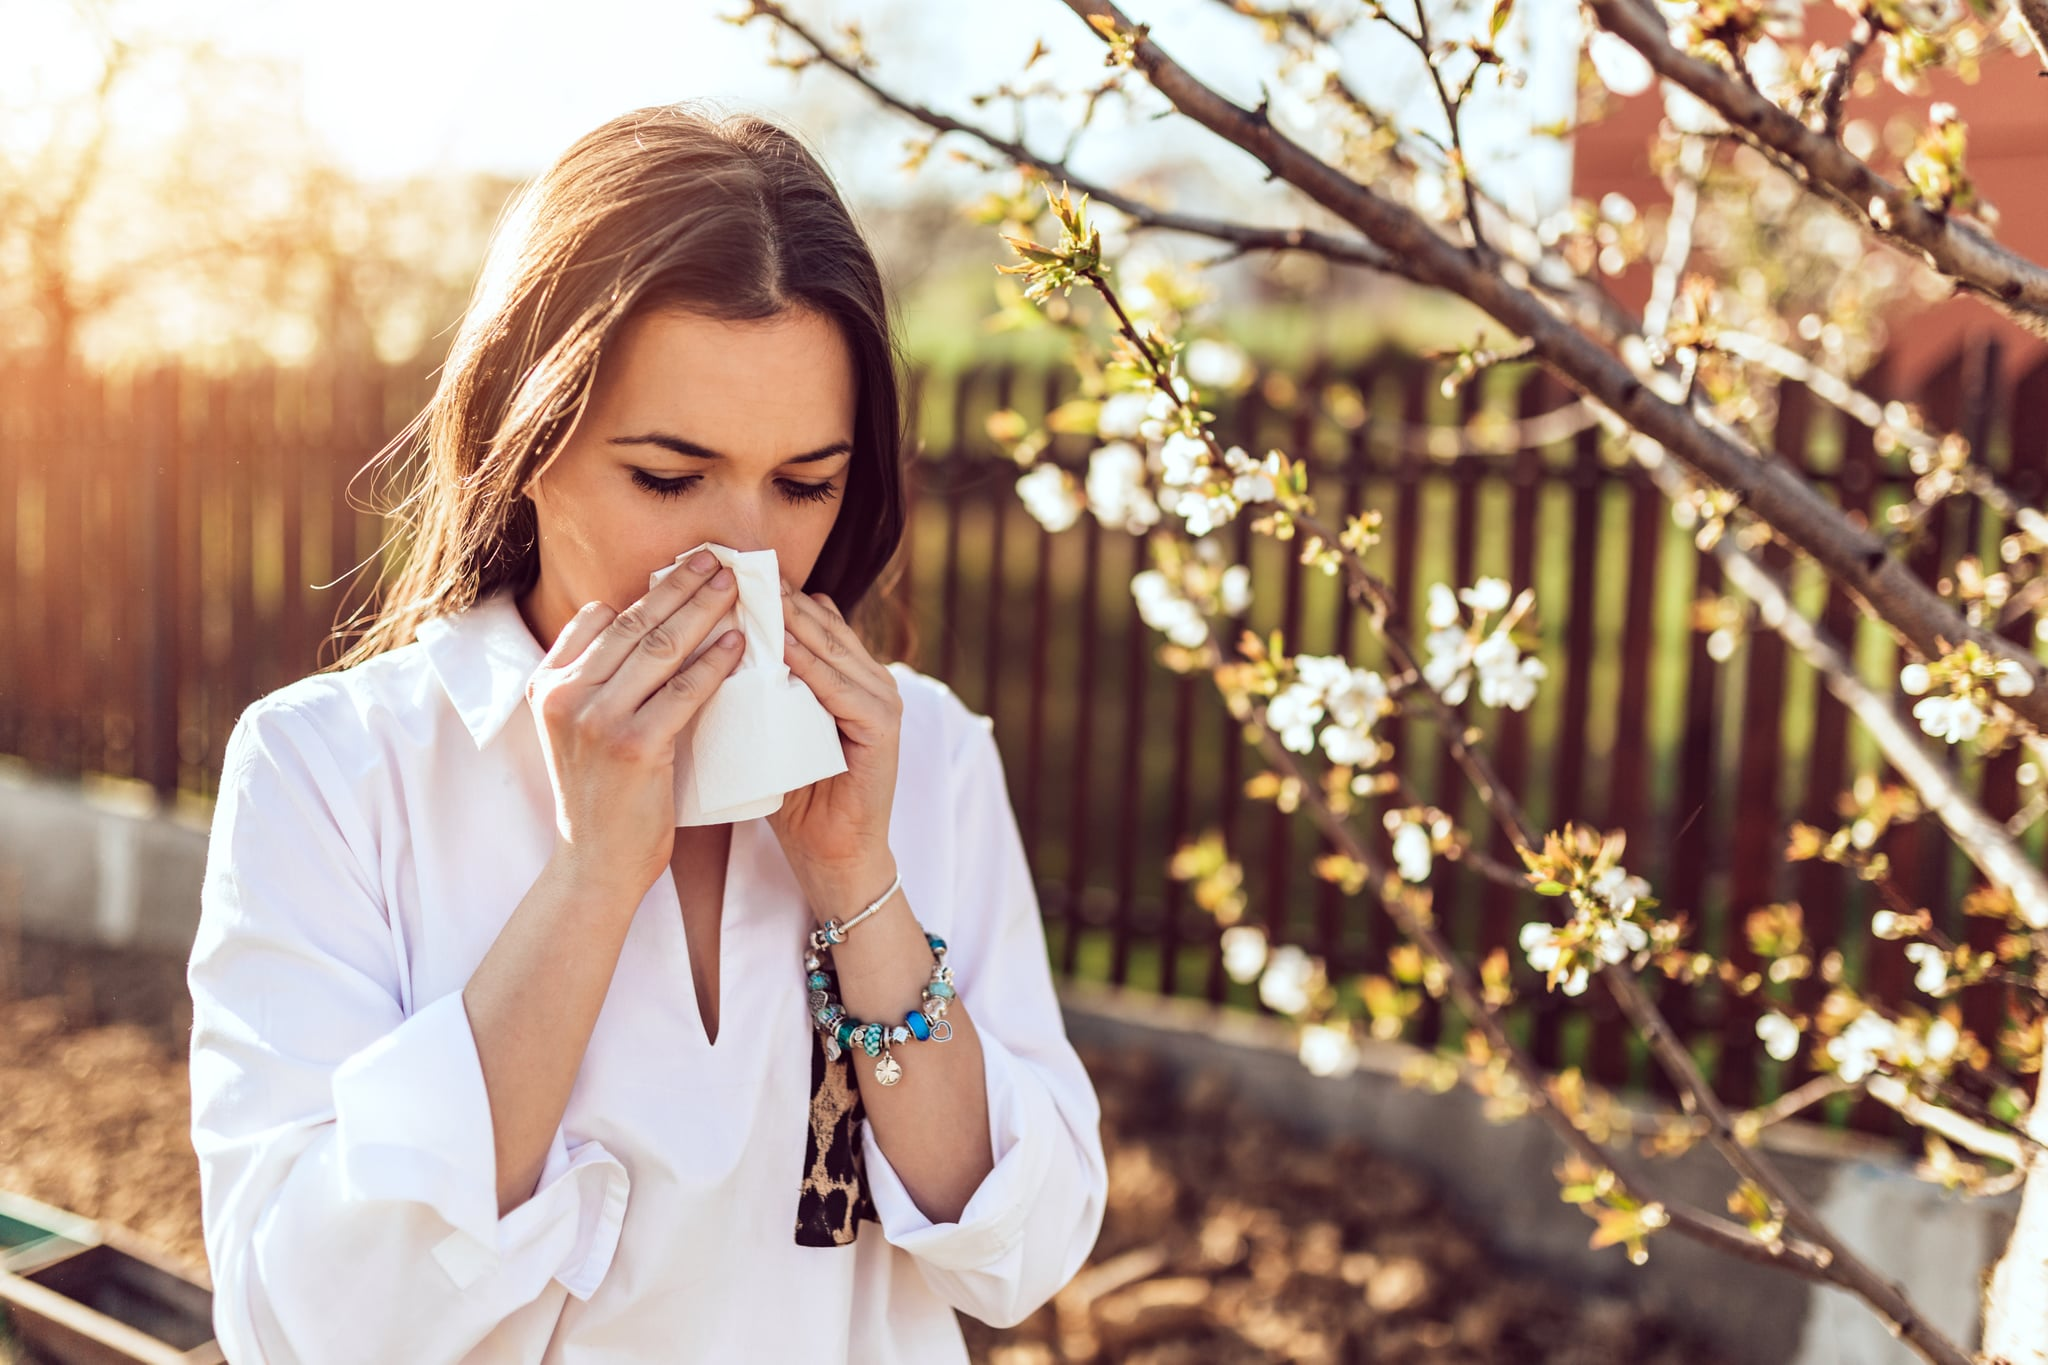 Attractive young adult woman coughing and sneezing outdoors. Sick people allergy or virus influenca concept.